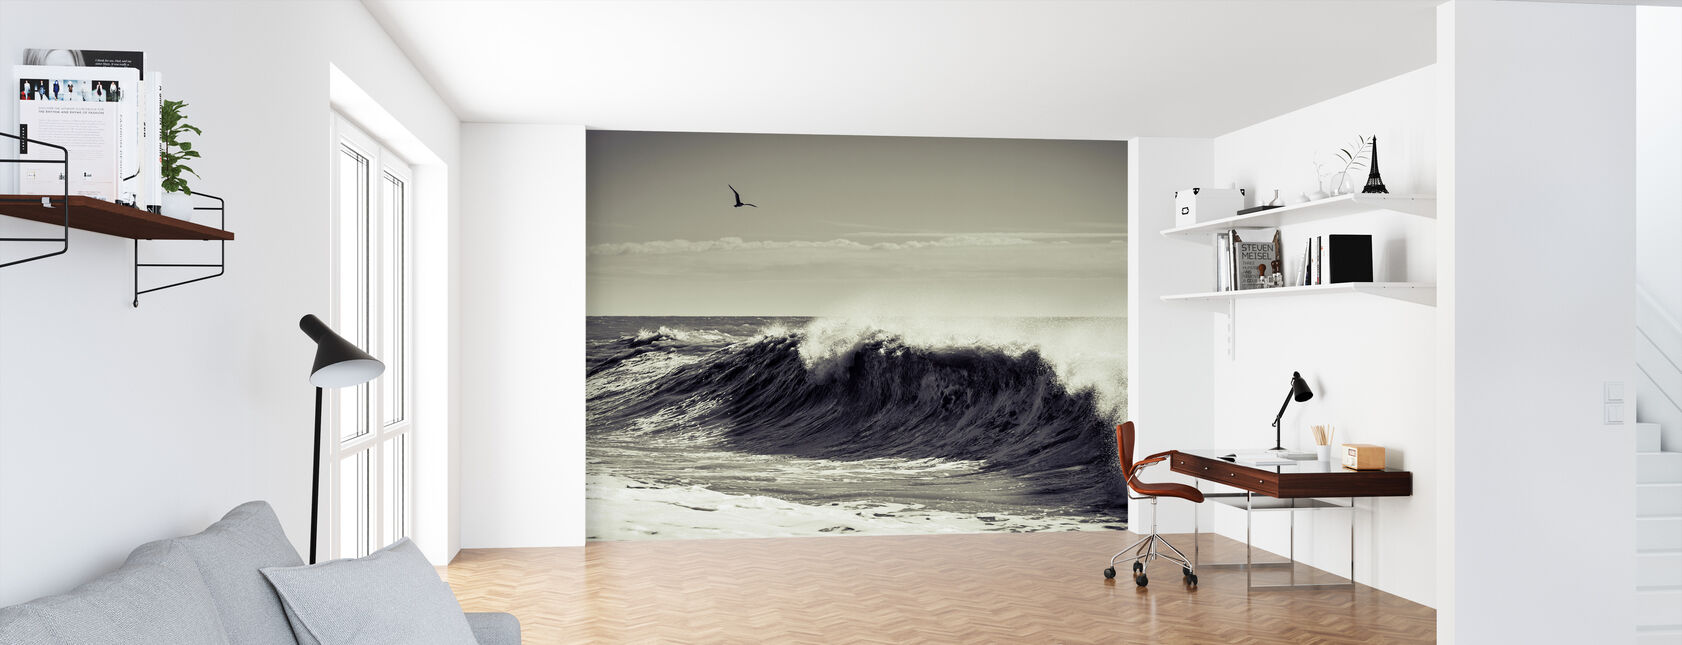 Breaking Wave - Wallpaper - Office